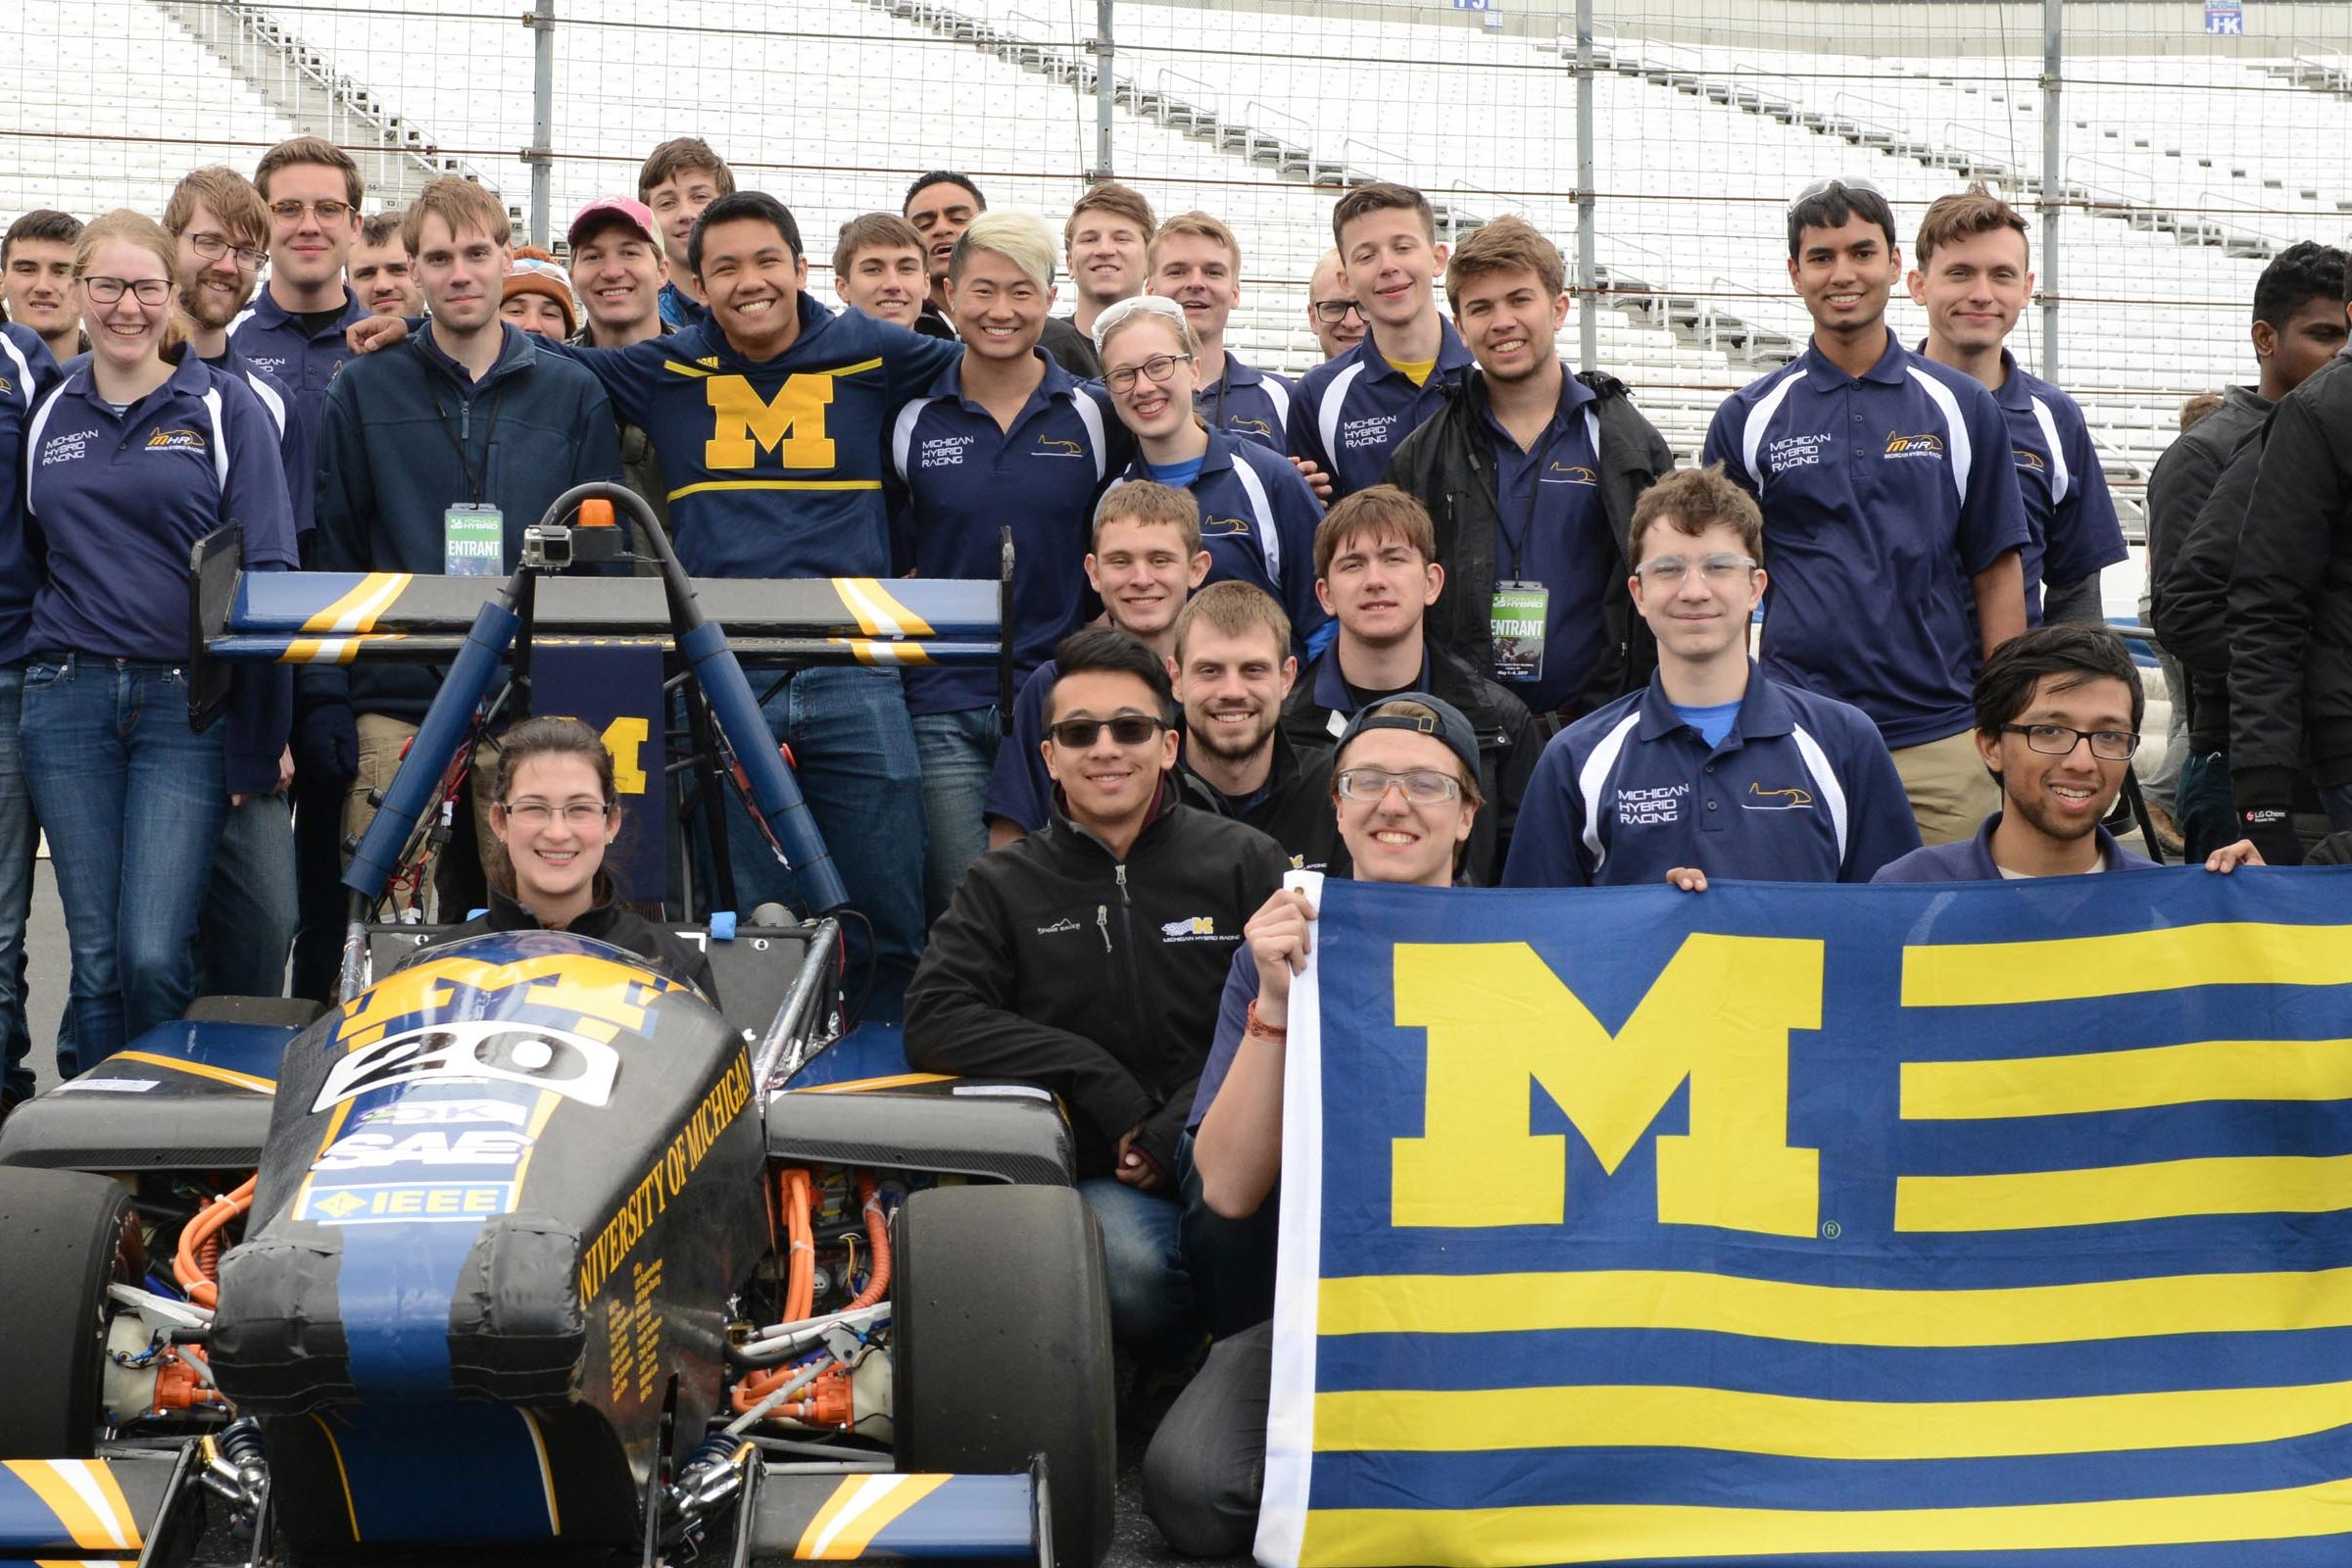 MHybrid team posing with car